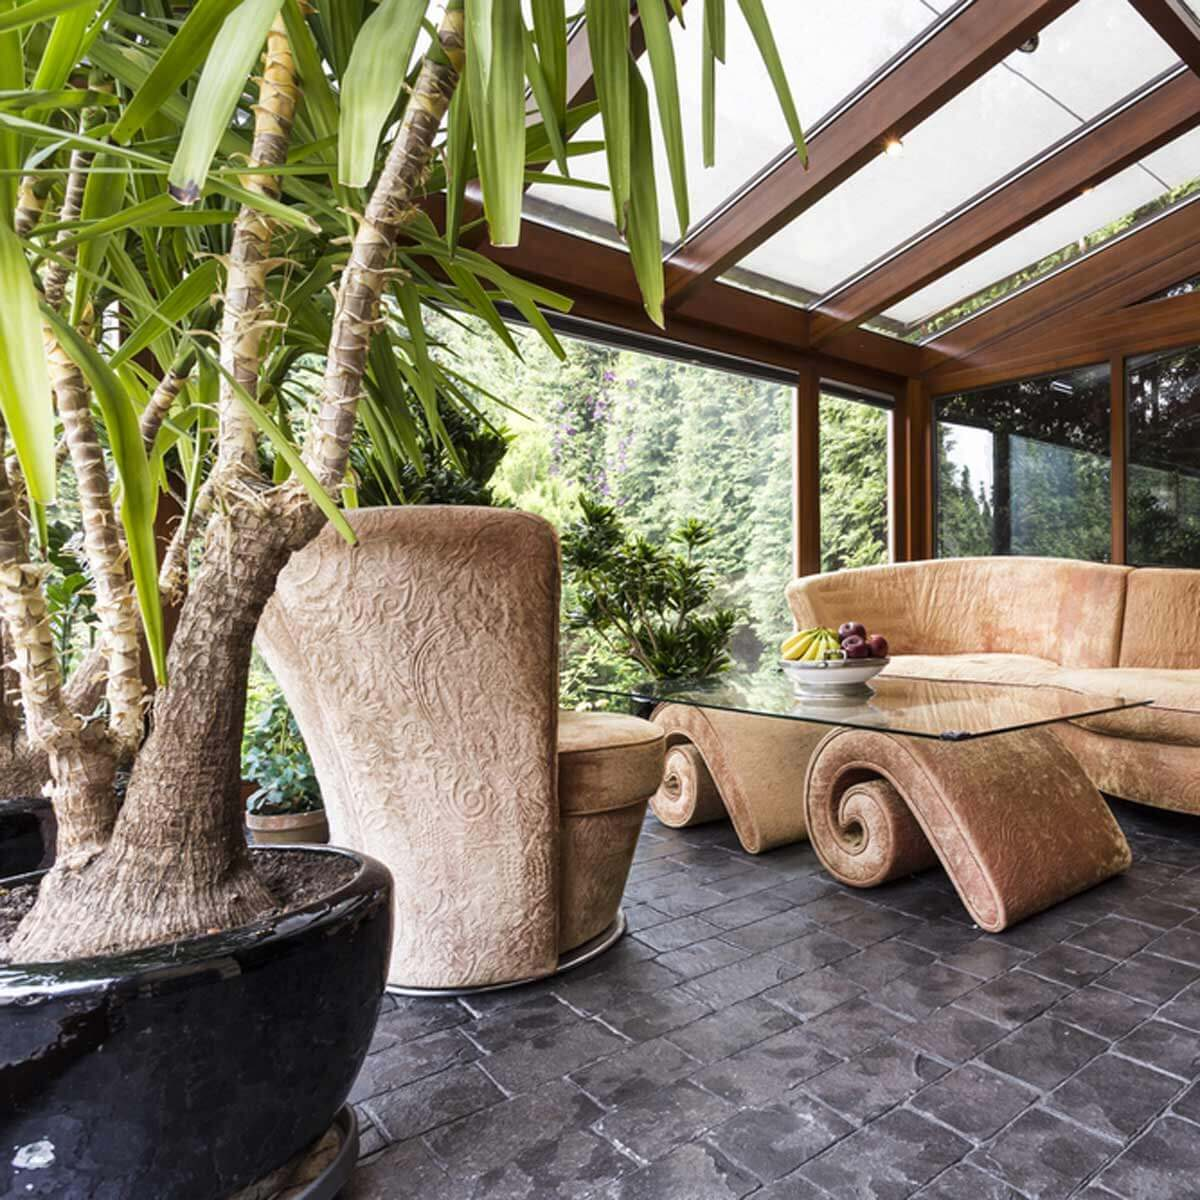 dfh13_shutterstock_656471947 tropical sun room patio